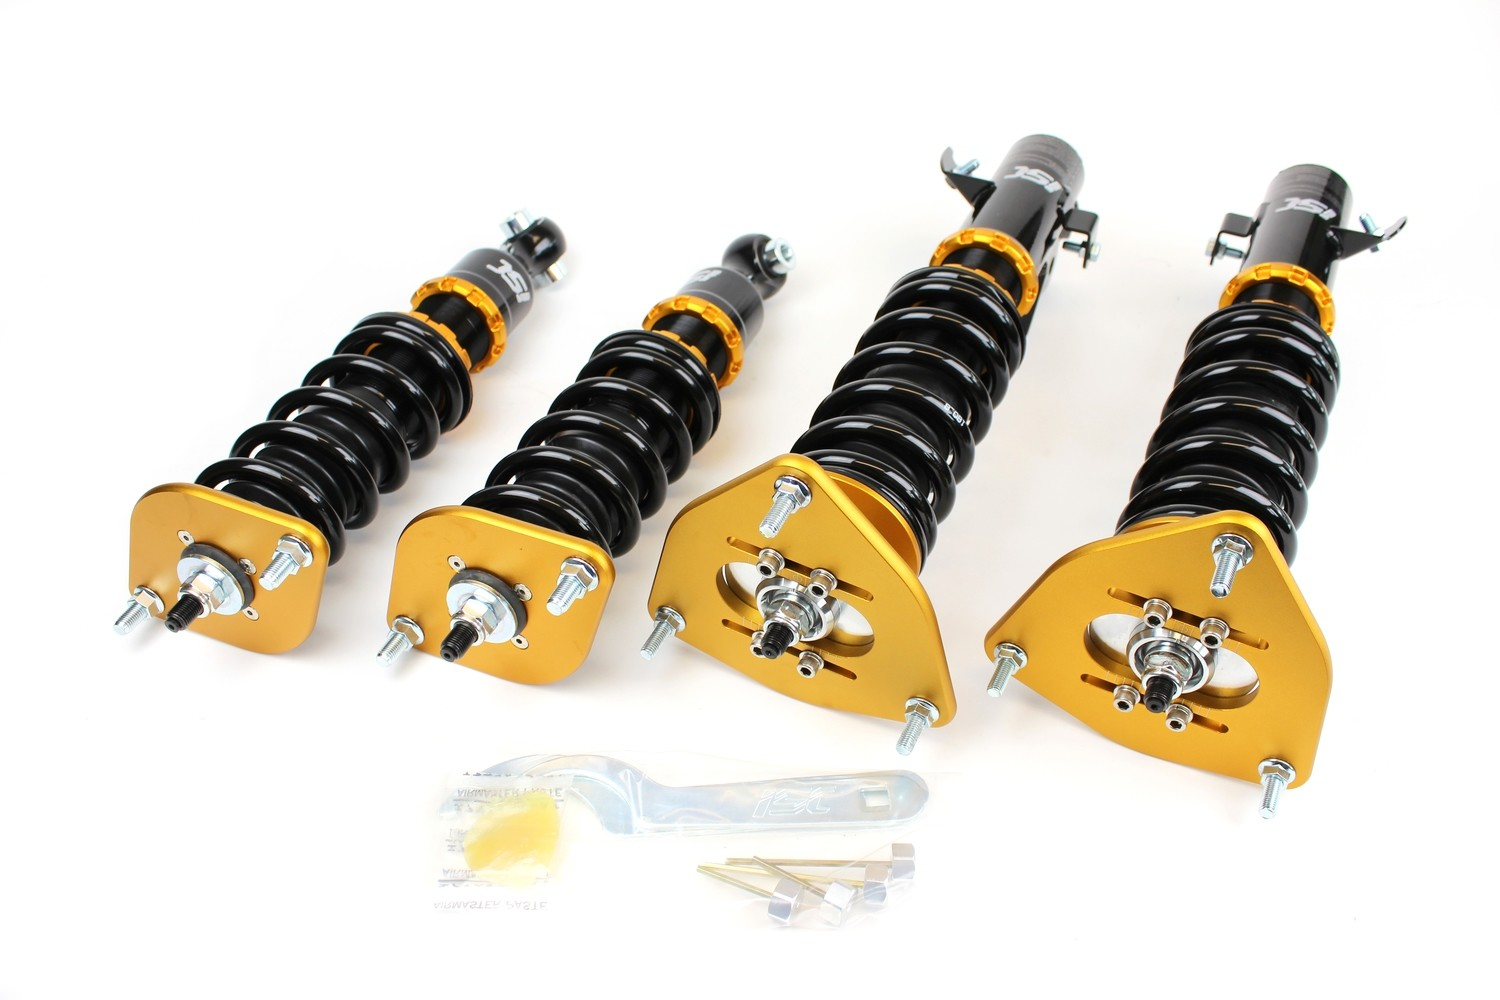 NEW: Subaru WRX 08-14 ISC N1 V2 Ultra Low Coilover Suspension